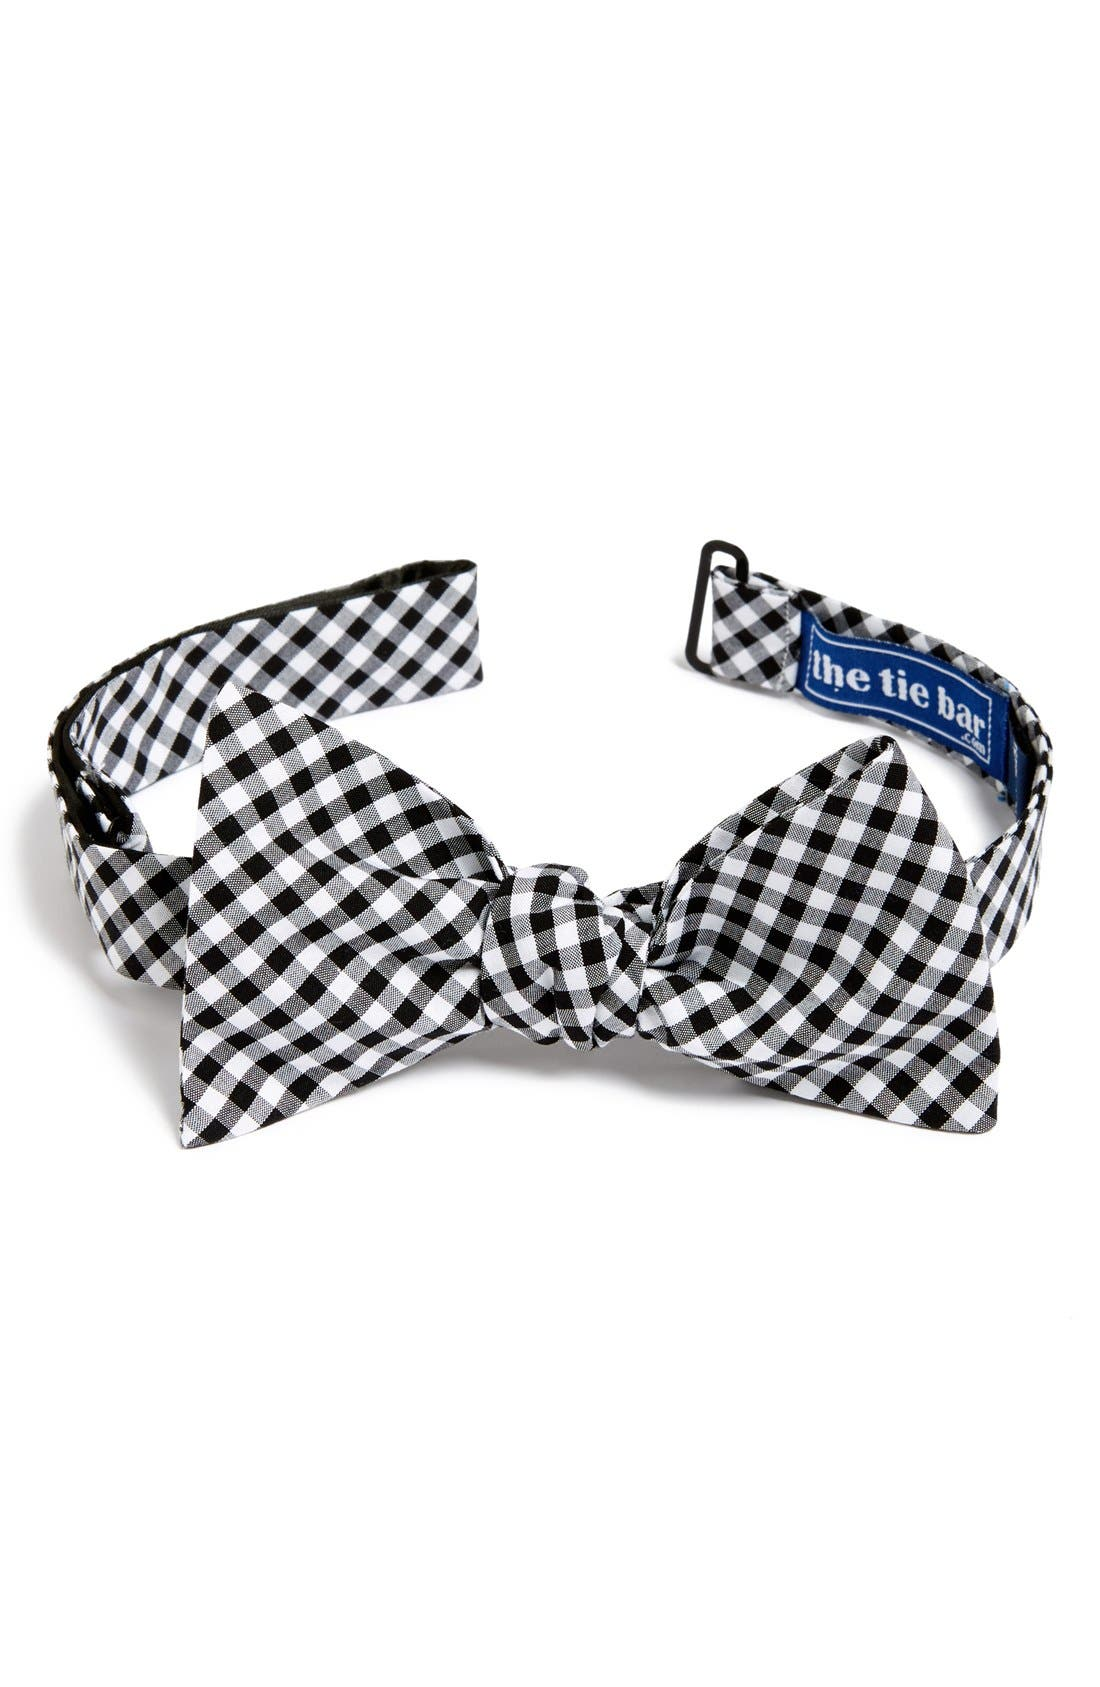 THE TIE BAR Gingham Cotton Bow Tie